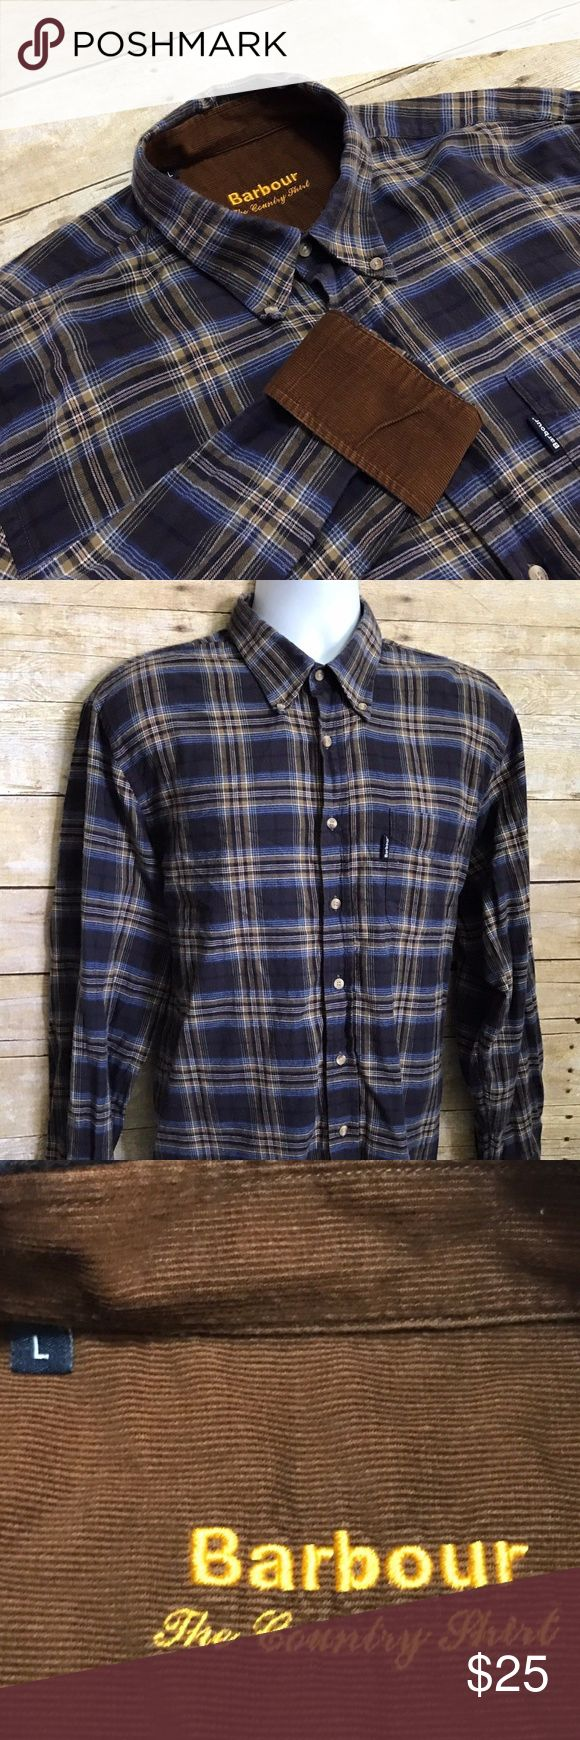 Barbour Country Shirt Blue Plaid Flannel Large Barbour Country Shirt Blue Beige Plaid Flannel Men's Large Cotton Corduroy Trim  Measurements (inches): Pit to Pit (across the chest): 24 Sleeve (center collar to cuff): 34 Length (top of collar to hem): 31.5  Condition:  This item is in good pre-owned condition! Free from rips & stains.  All items come from a smoke/ pet free environment. Barbour Shirts Casual Button Down Shirts